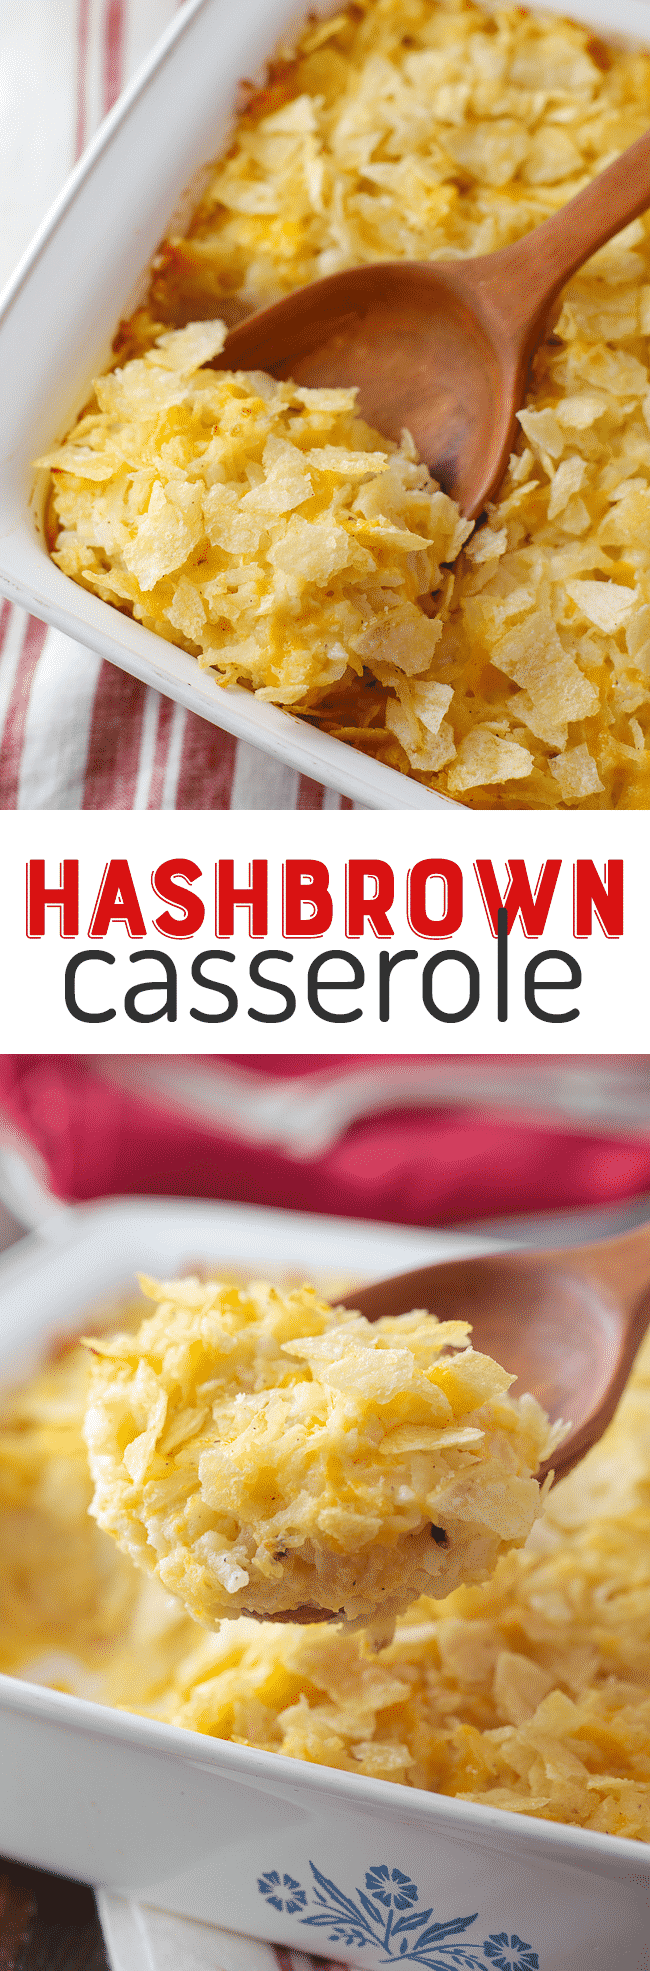 Cheesy Hashbrown Casserole - This easy, cheesy hashbrown casserole is the perfect comfort food. You'll love the potato chip topping!